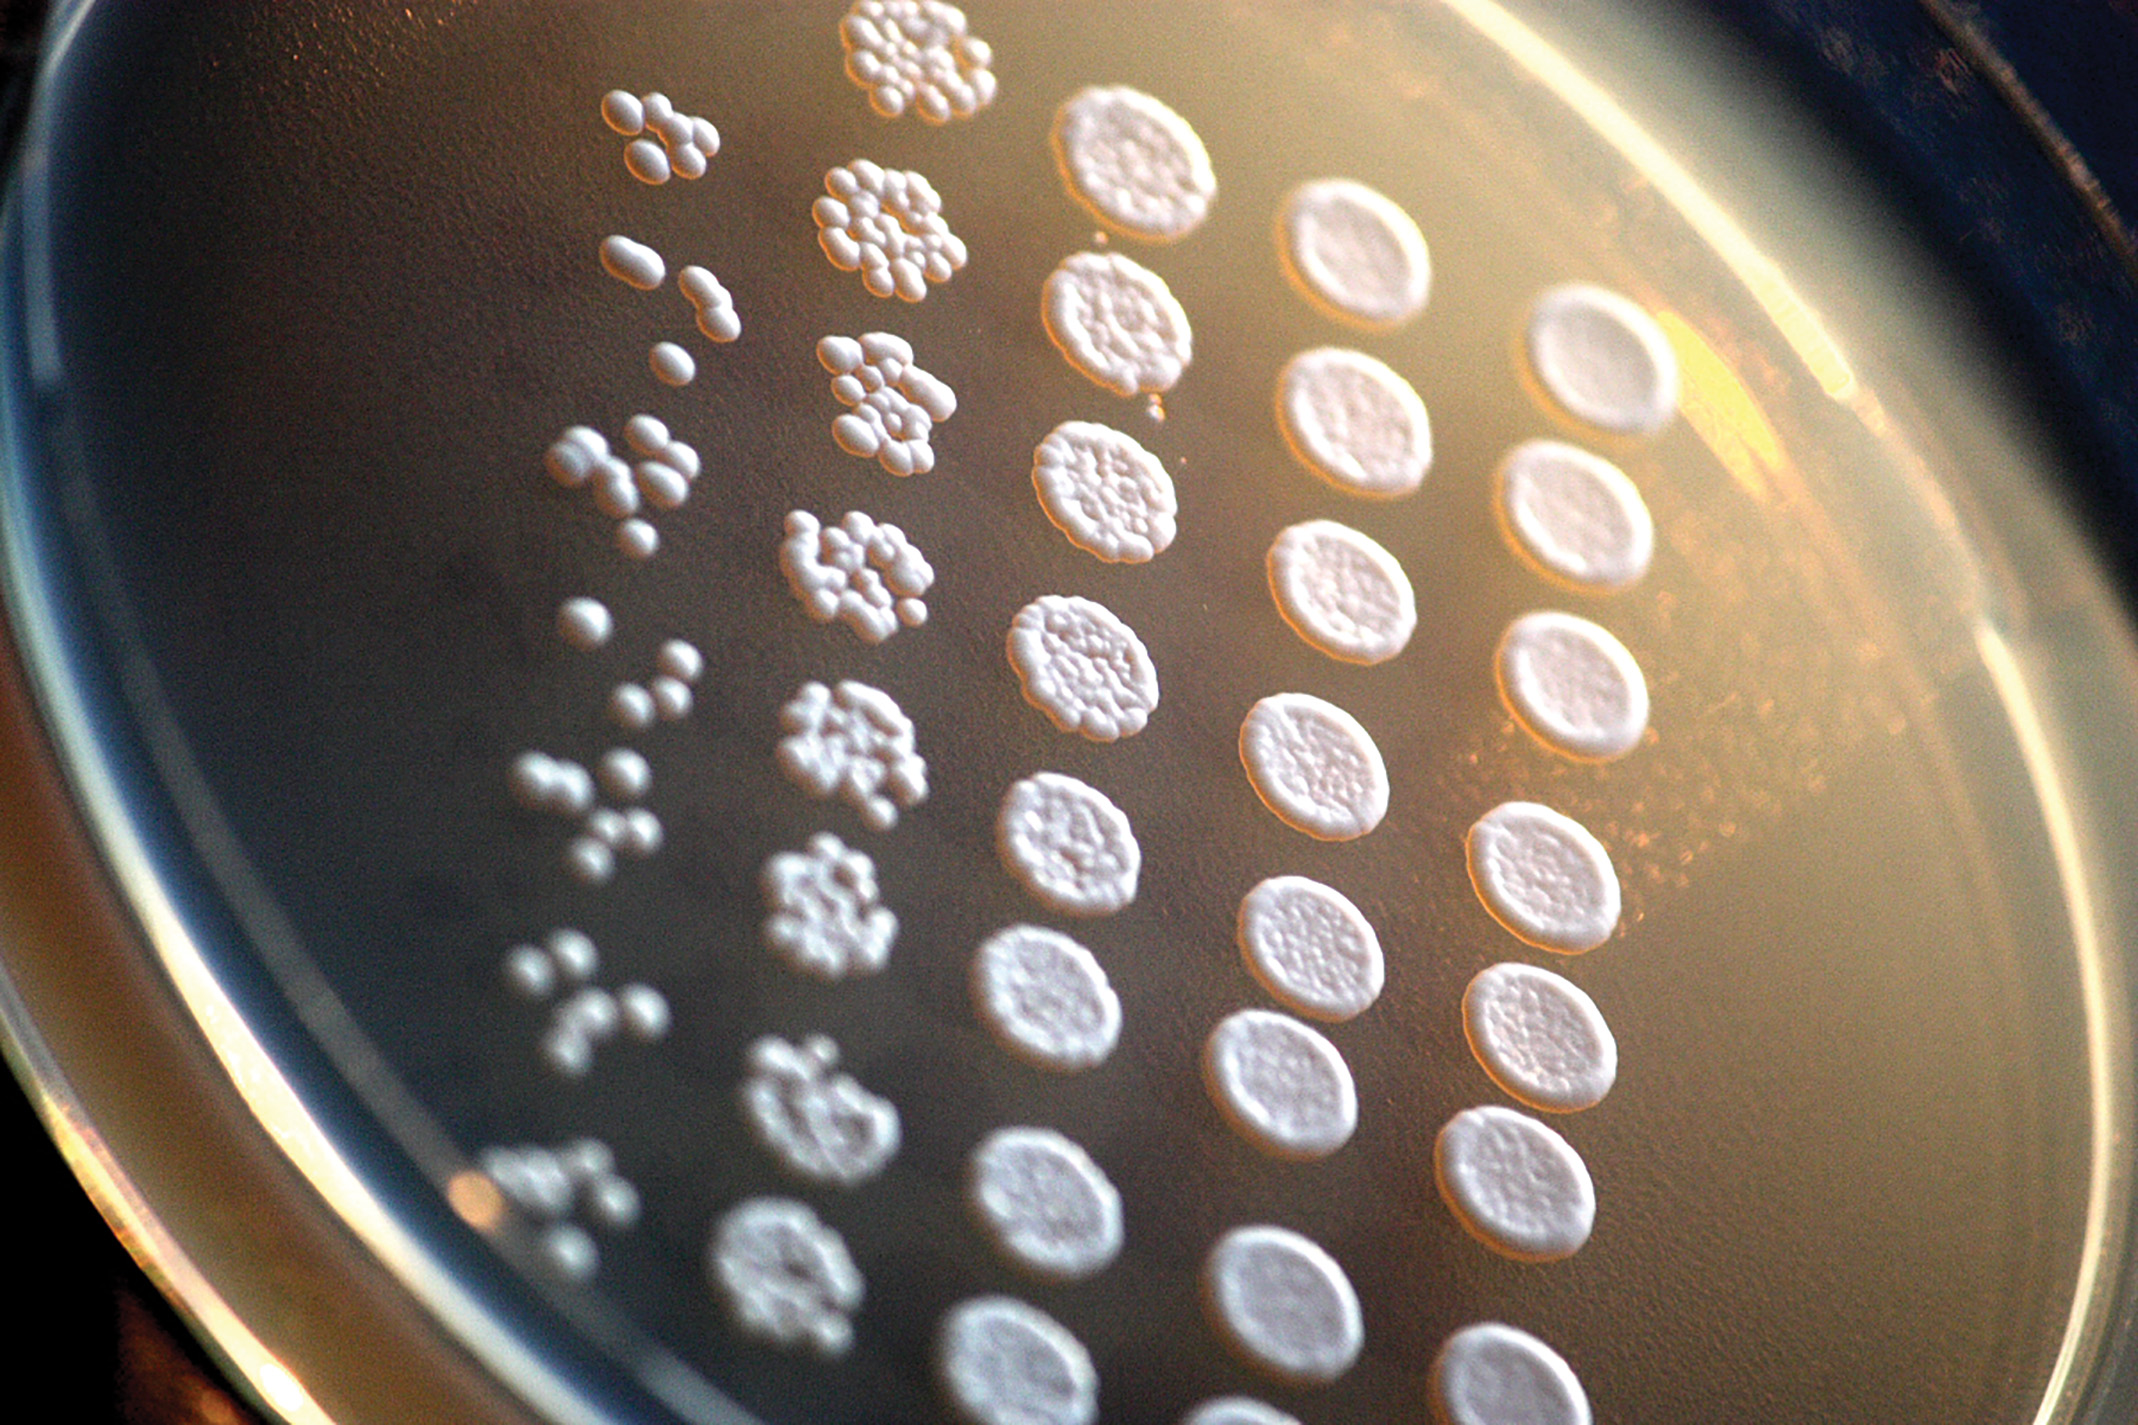 These baker's yeast cells have genetic similarities to human cells. Credit:Rainis Venta